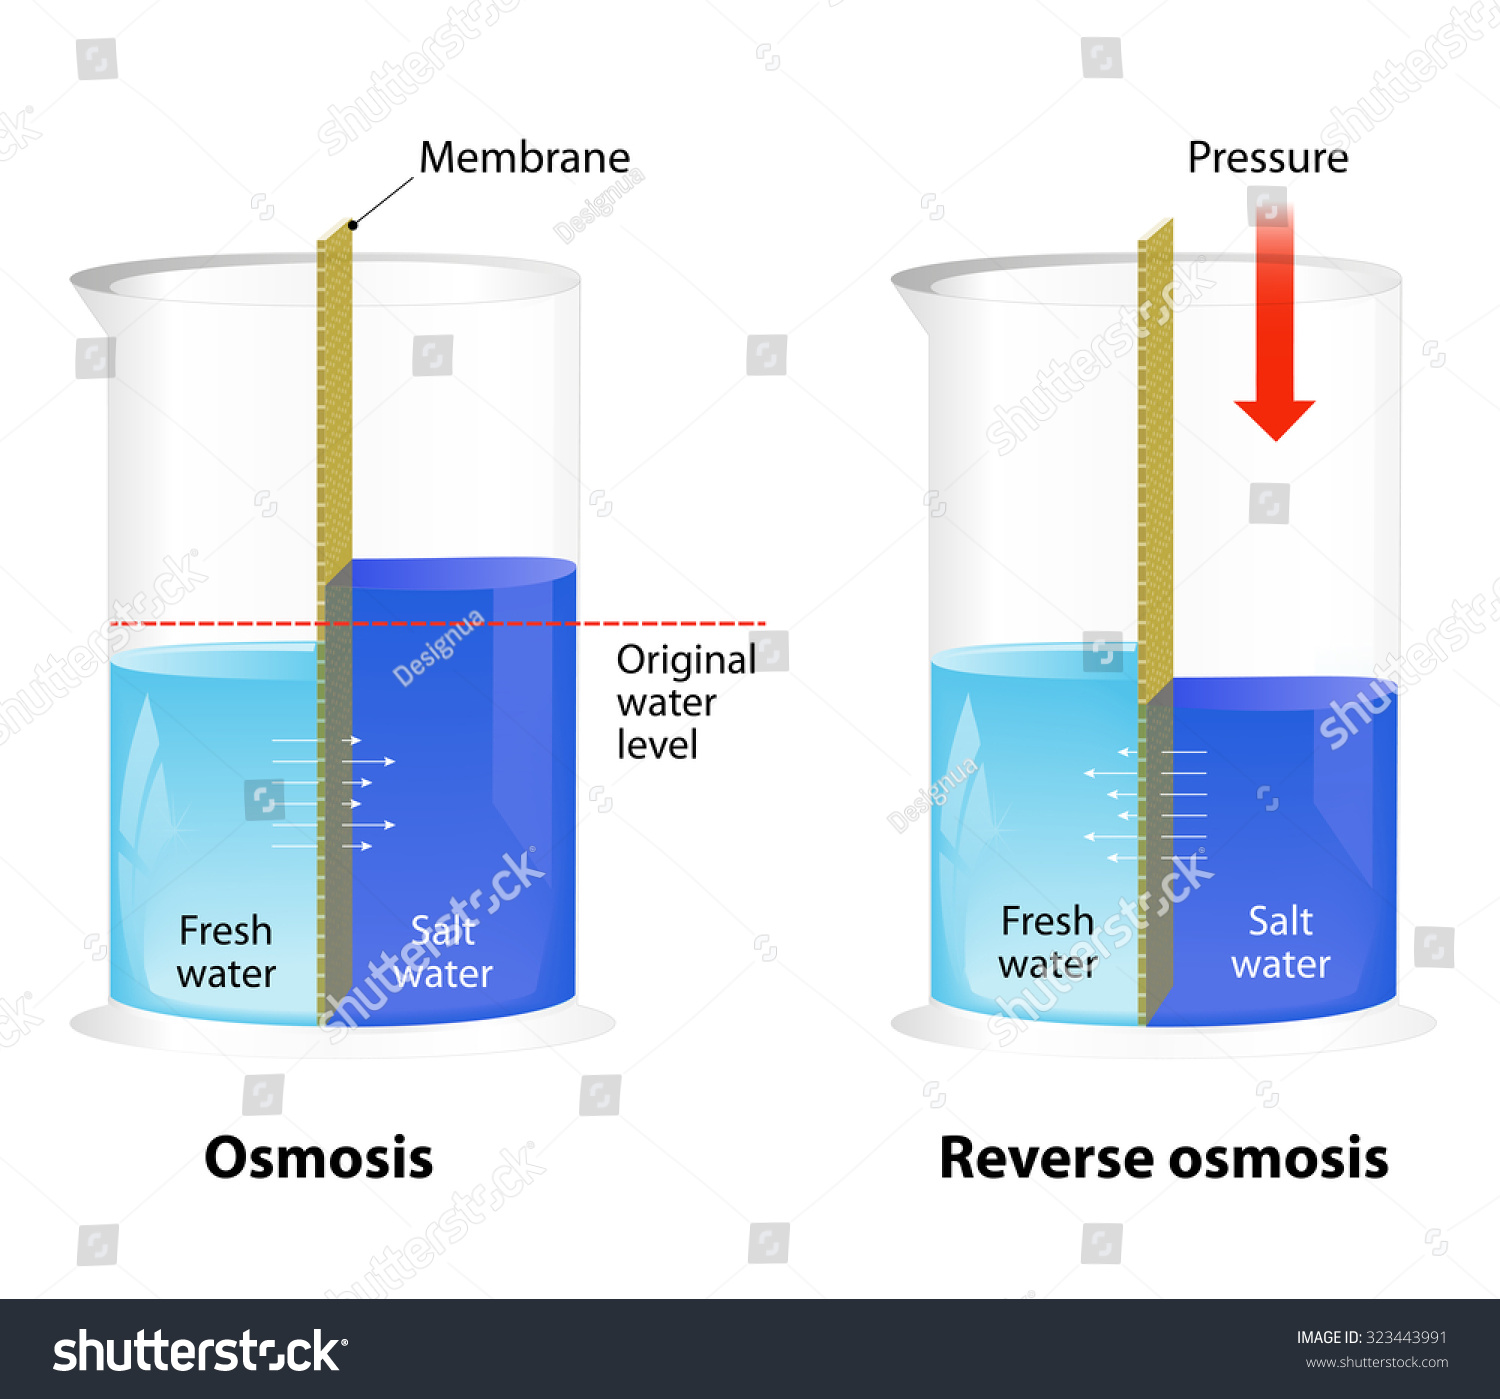 Difference Between Osmosis And Reverse Osmosis Water